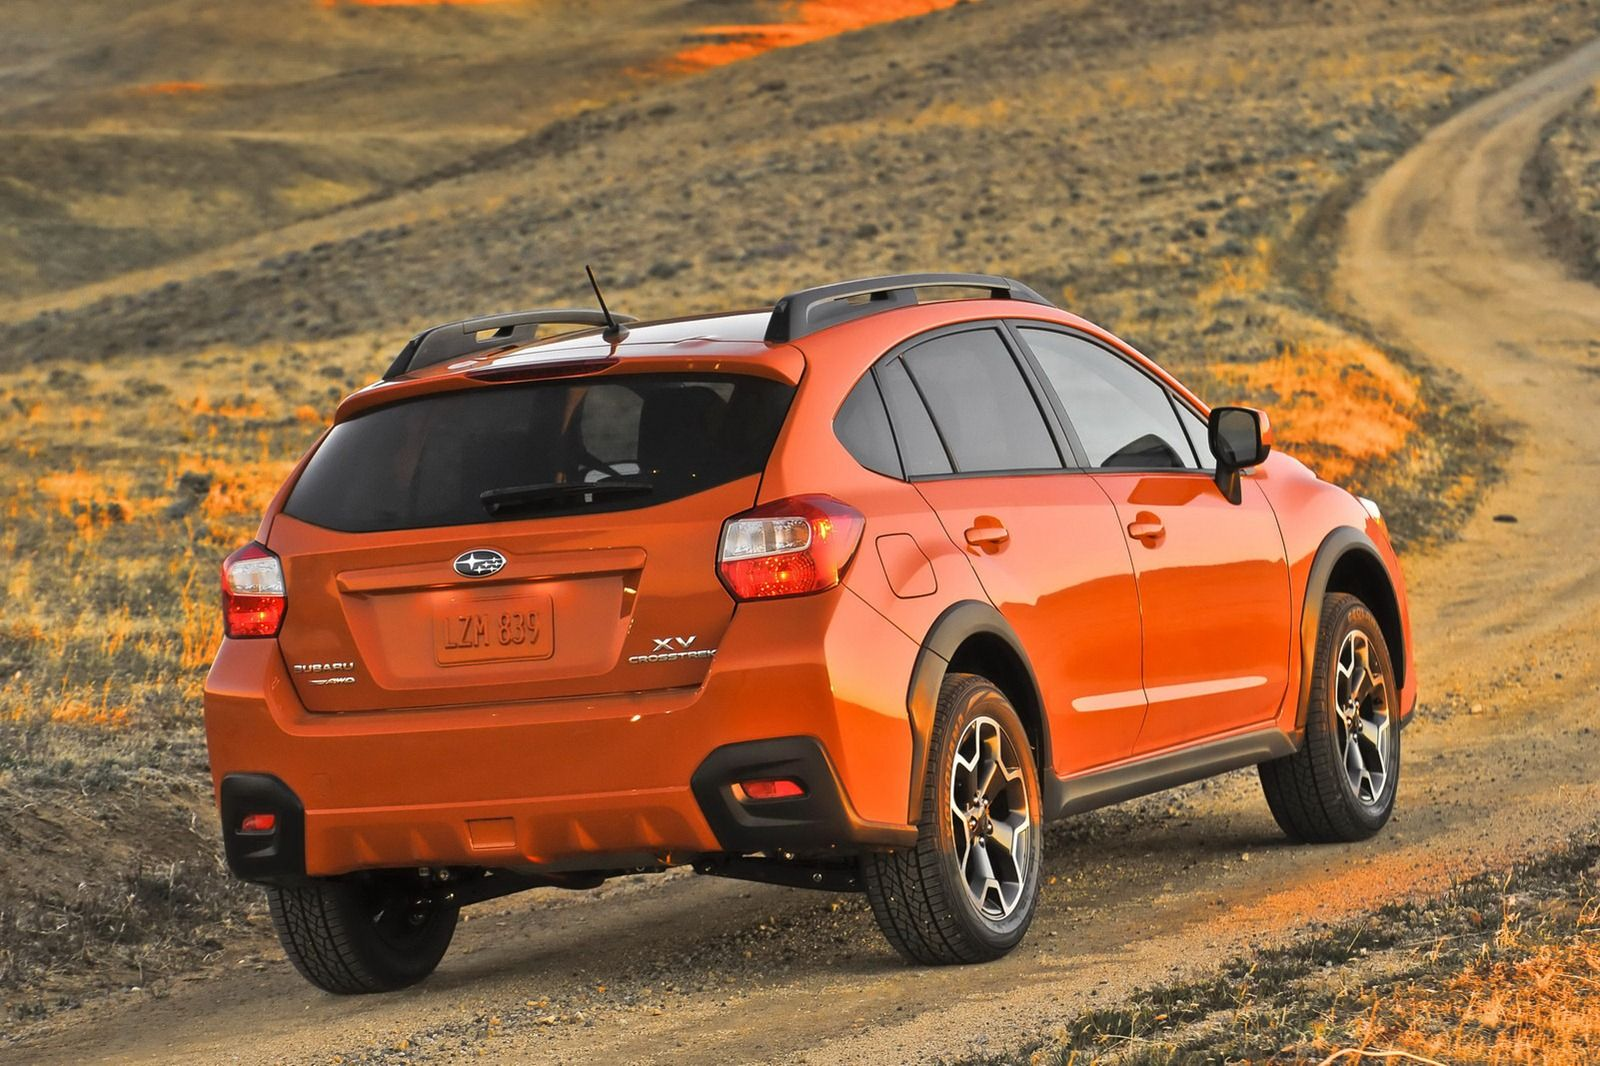 2017 Xv Subaru Crosstrek 2 0 Liter Boxer Engine With 148 Horses Teamed To S Symmetrical All Wheel Drive System Via A Five Sd Manual Gearbox Or